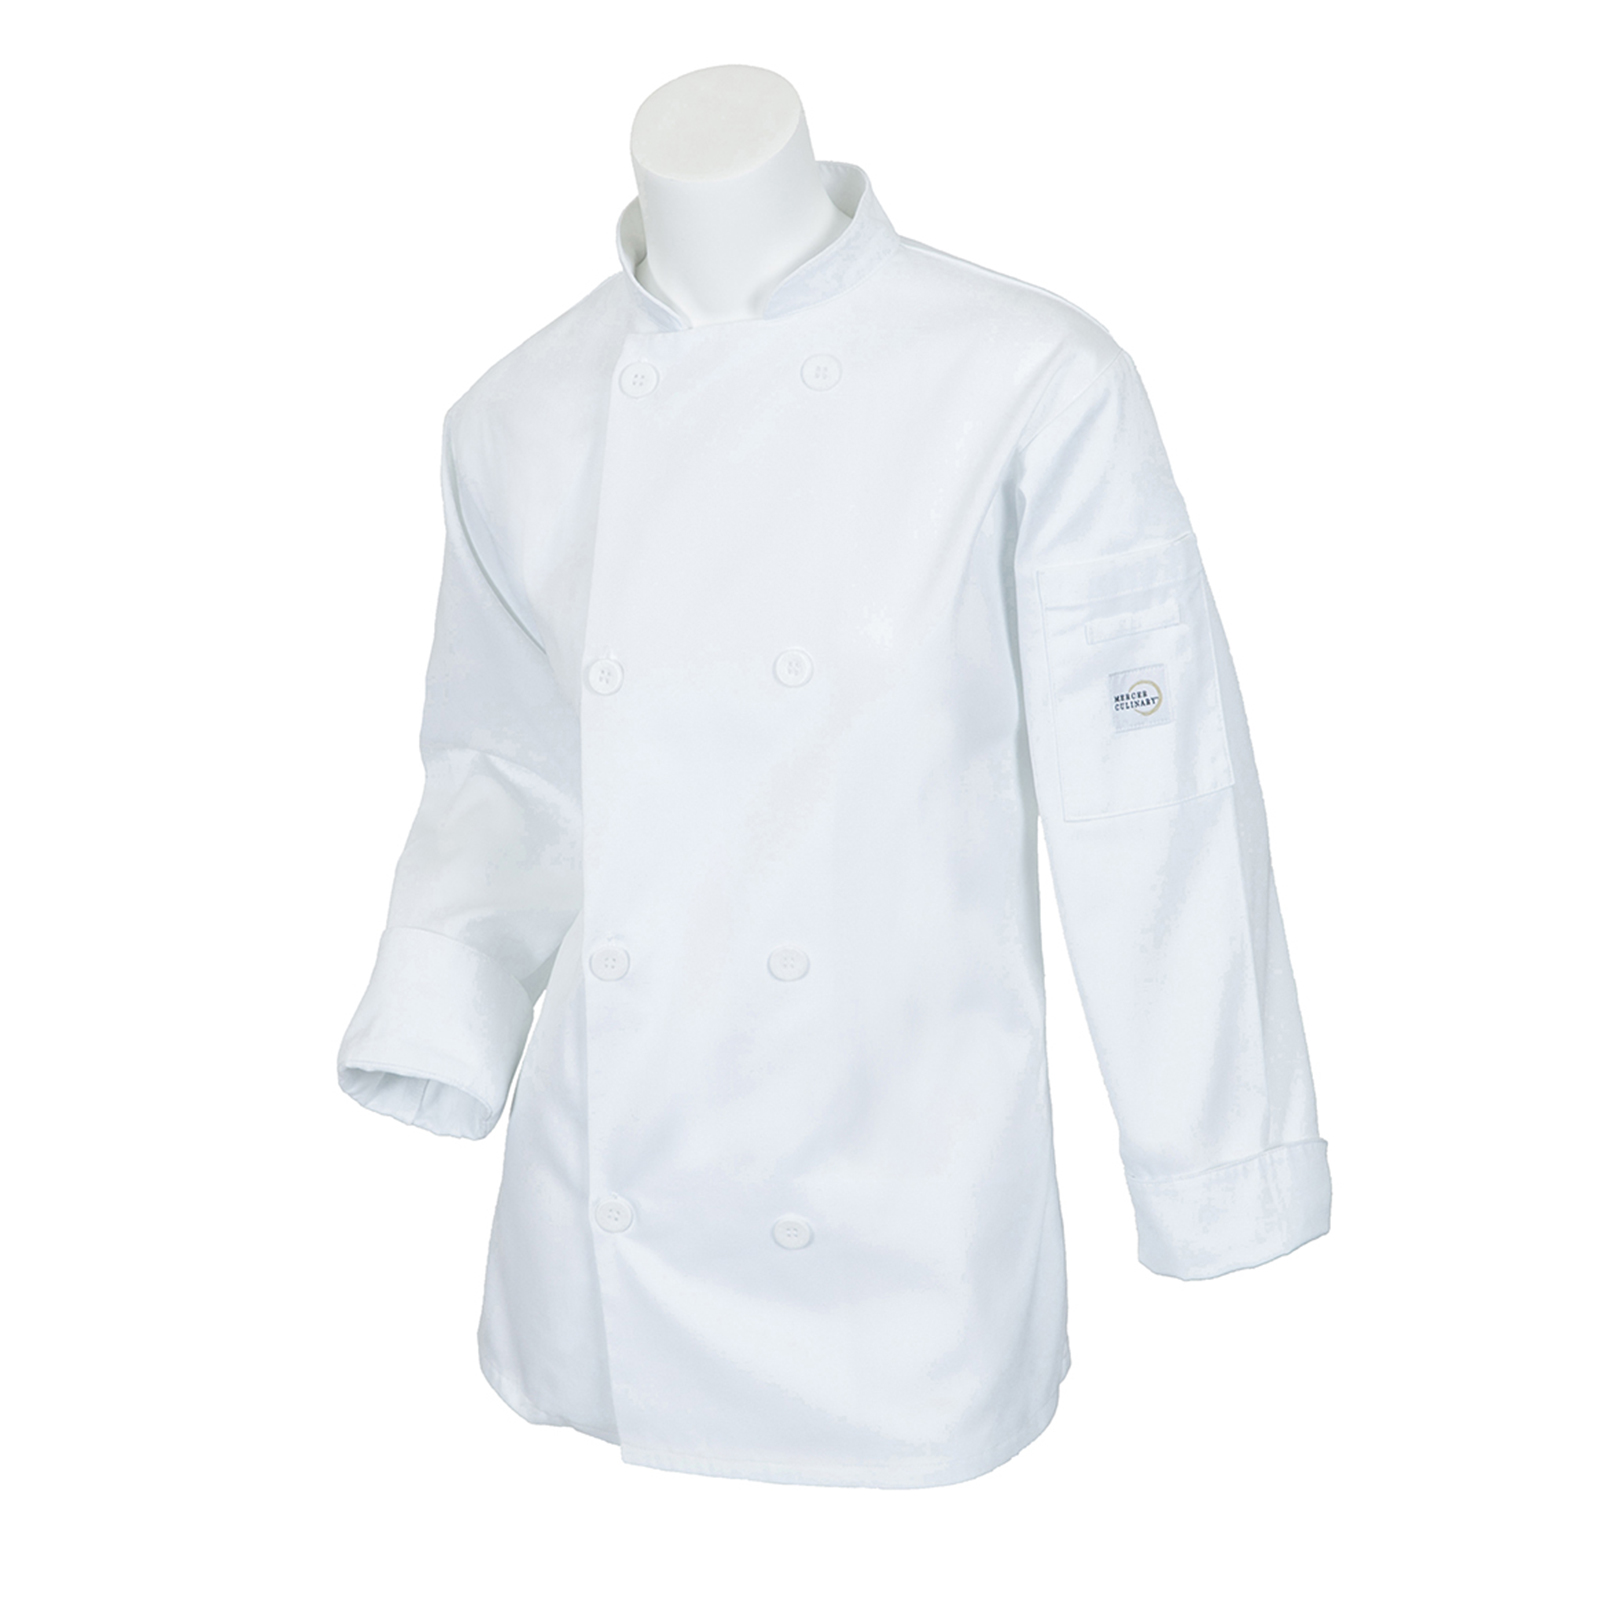 Mercer Culinary M60020WH2X chef's coat